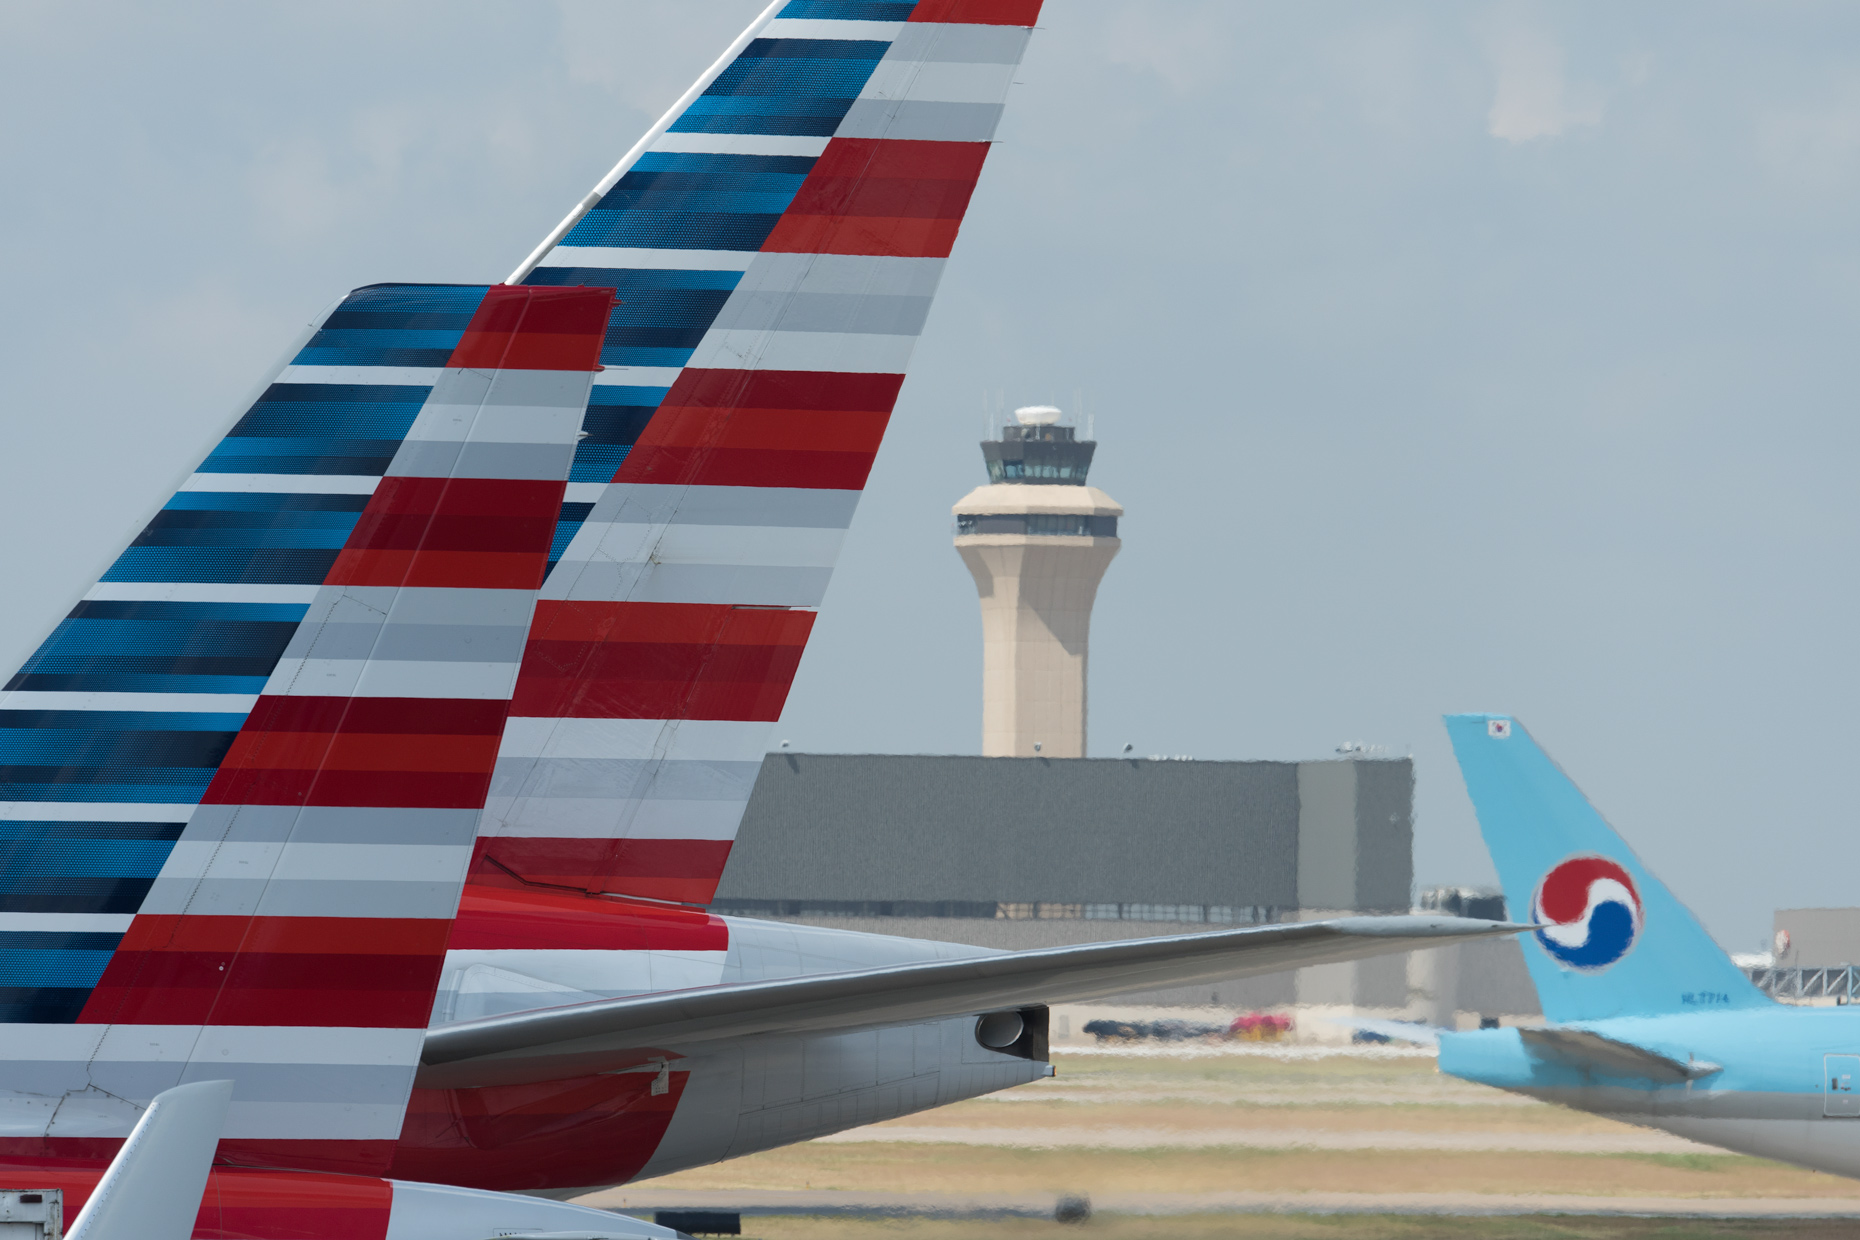 American Airlines tails at DFW Airport by commercial photographer in Dallas Kevin Brown